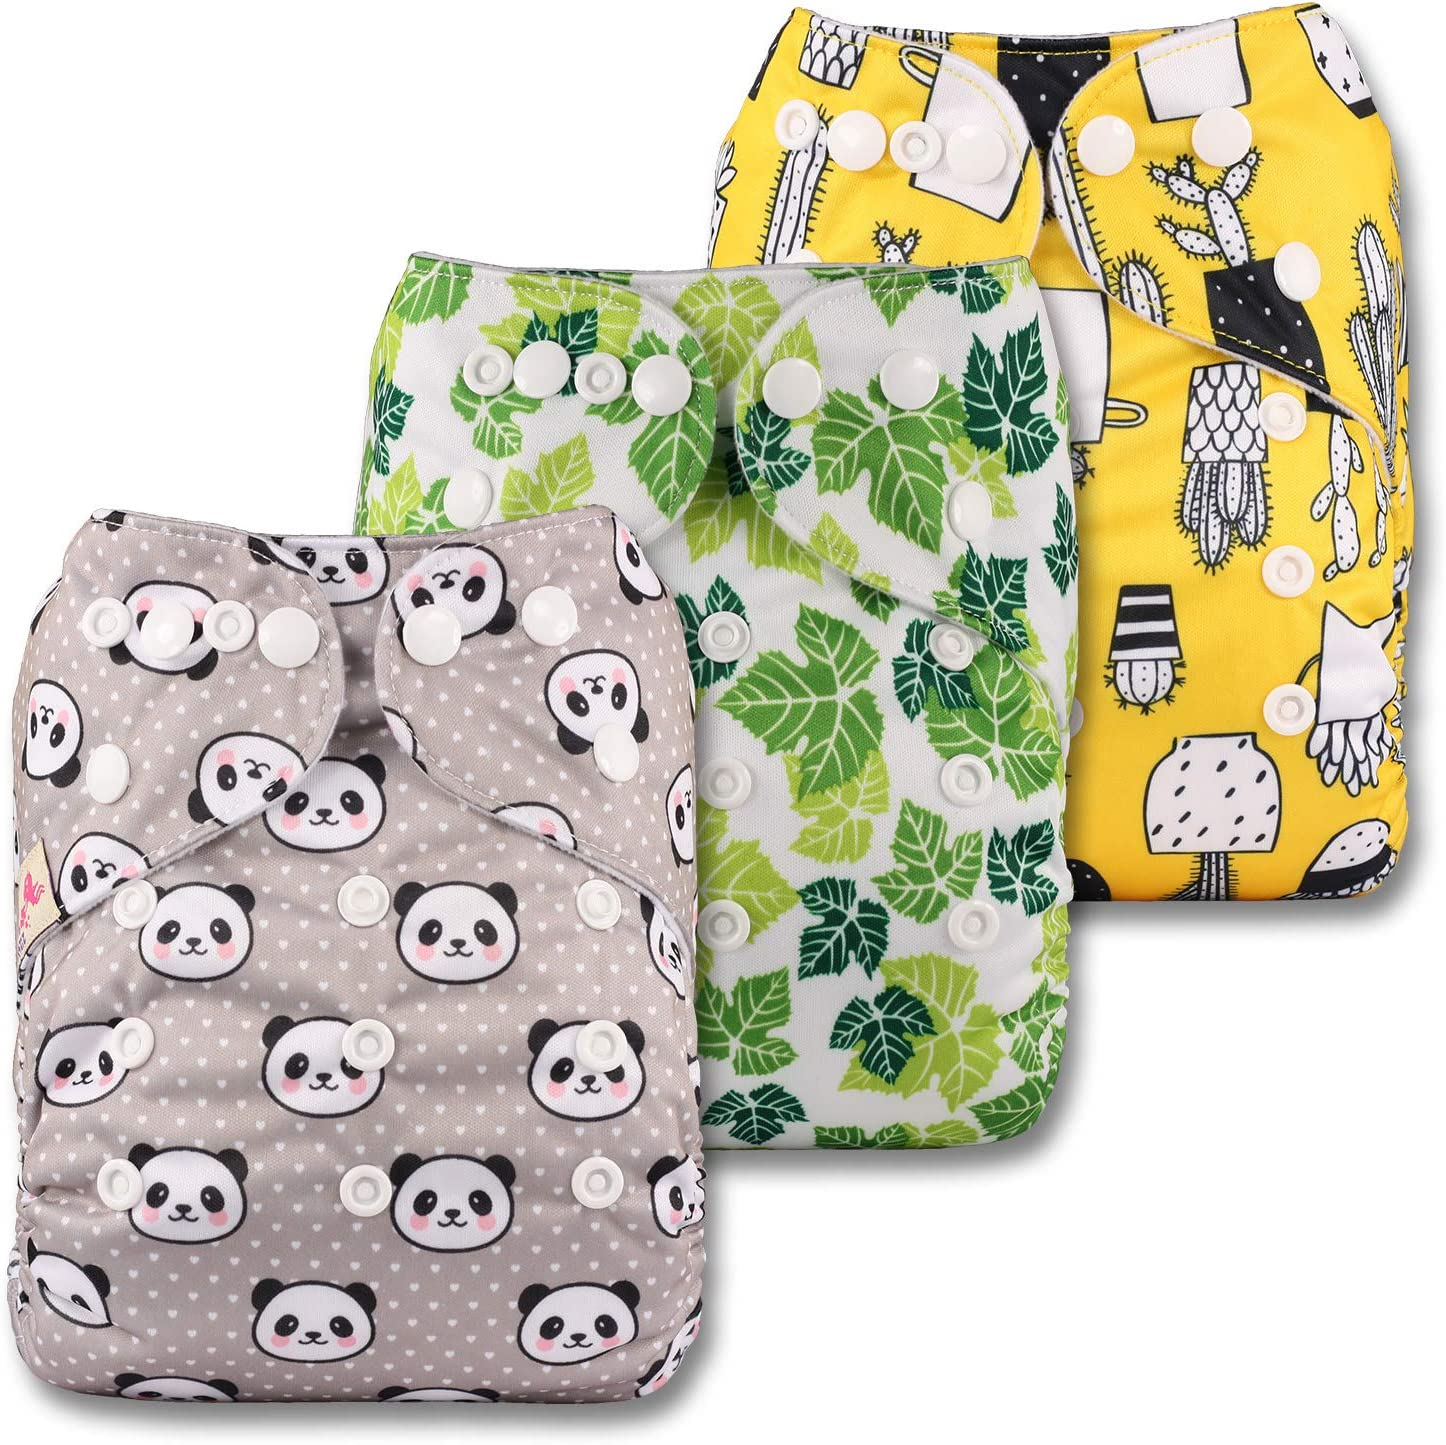 Littles /& Bloomz with 6 Bamboo Charcoal Inserts Patterns 308 Set of 3 Reusable Pocket Cloth Nappy Fastener: Popper